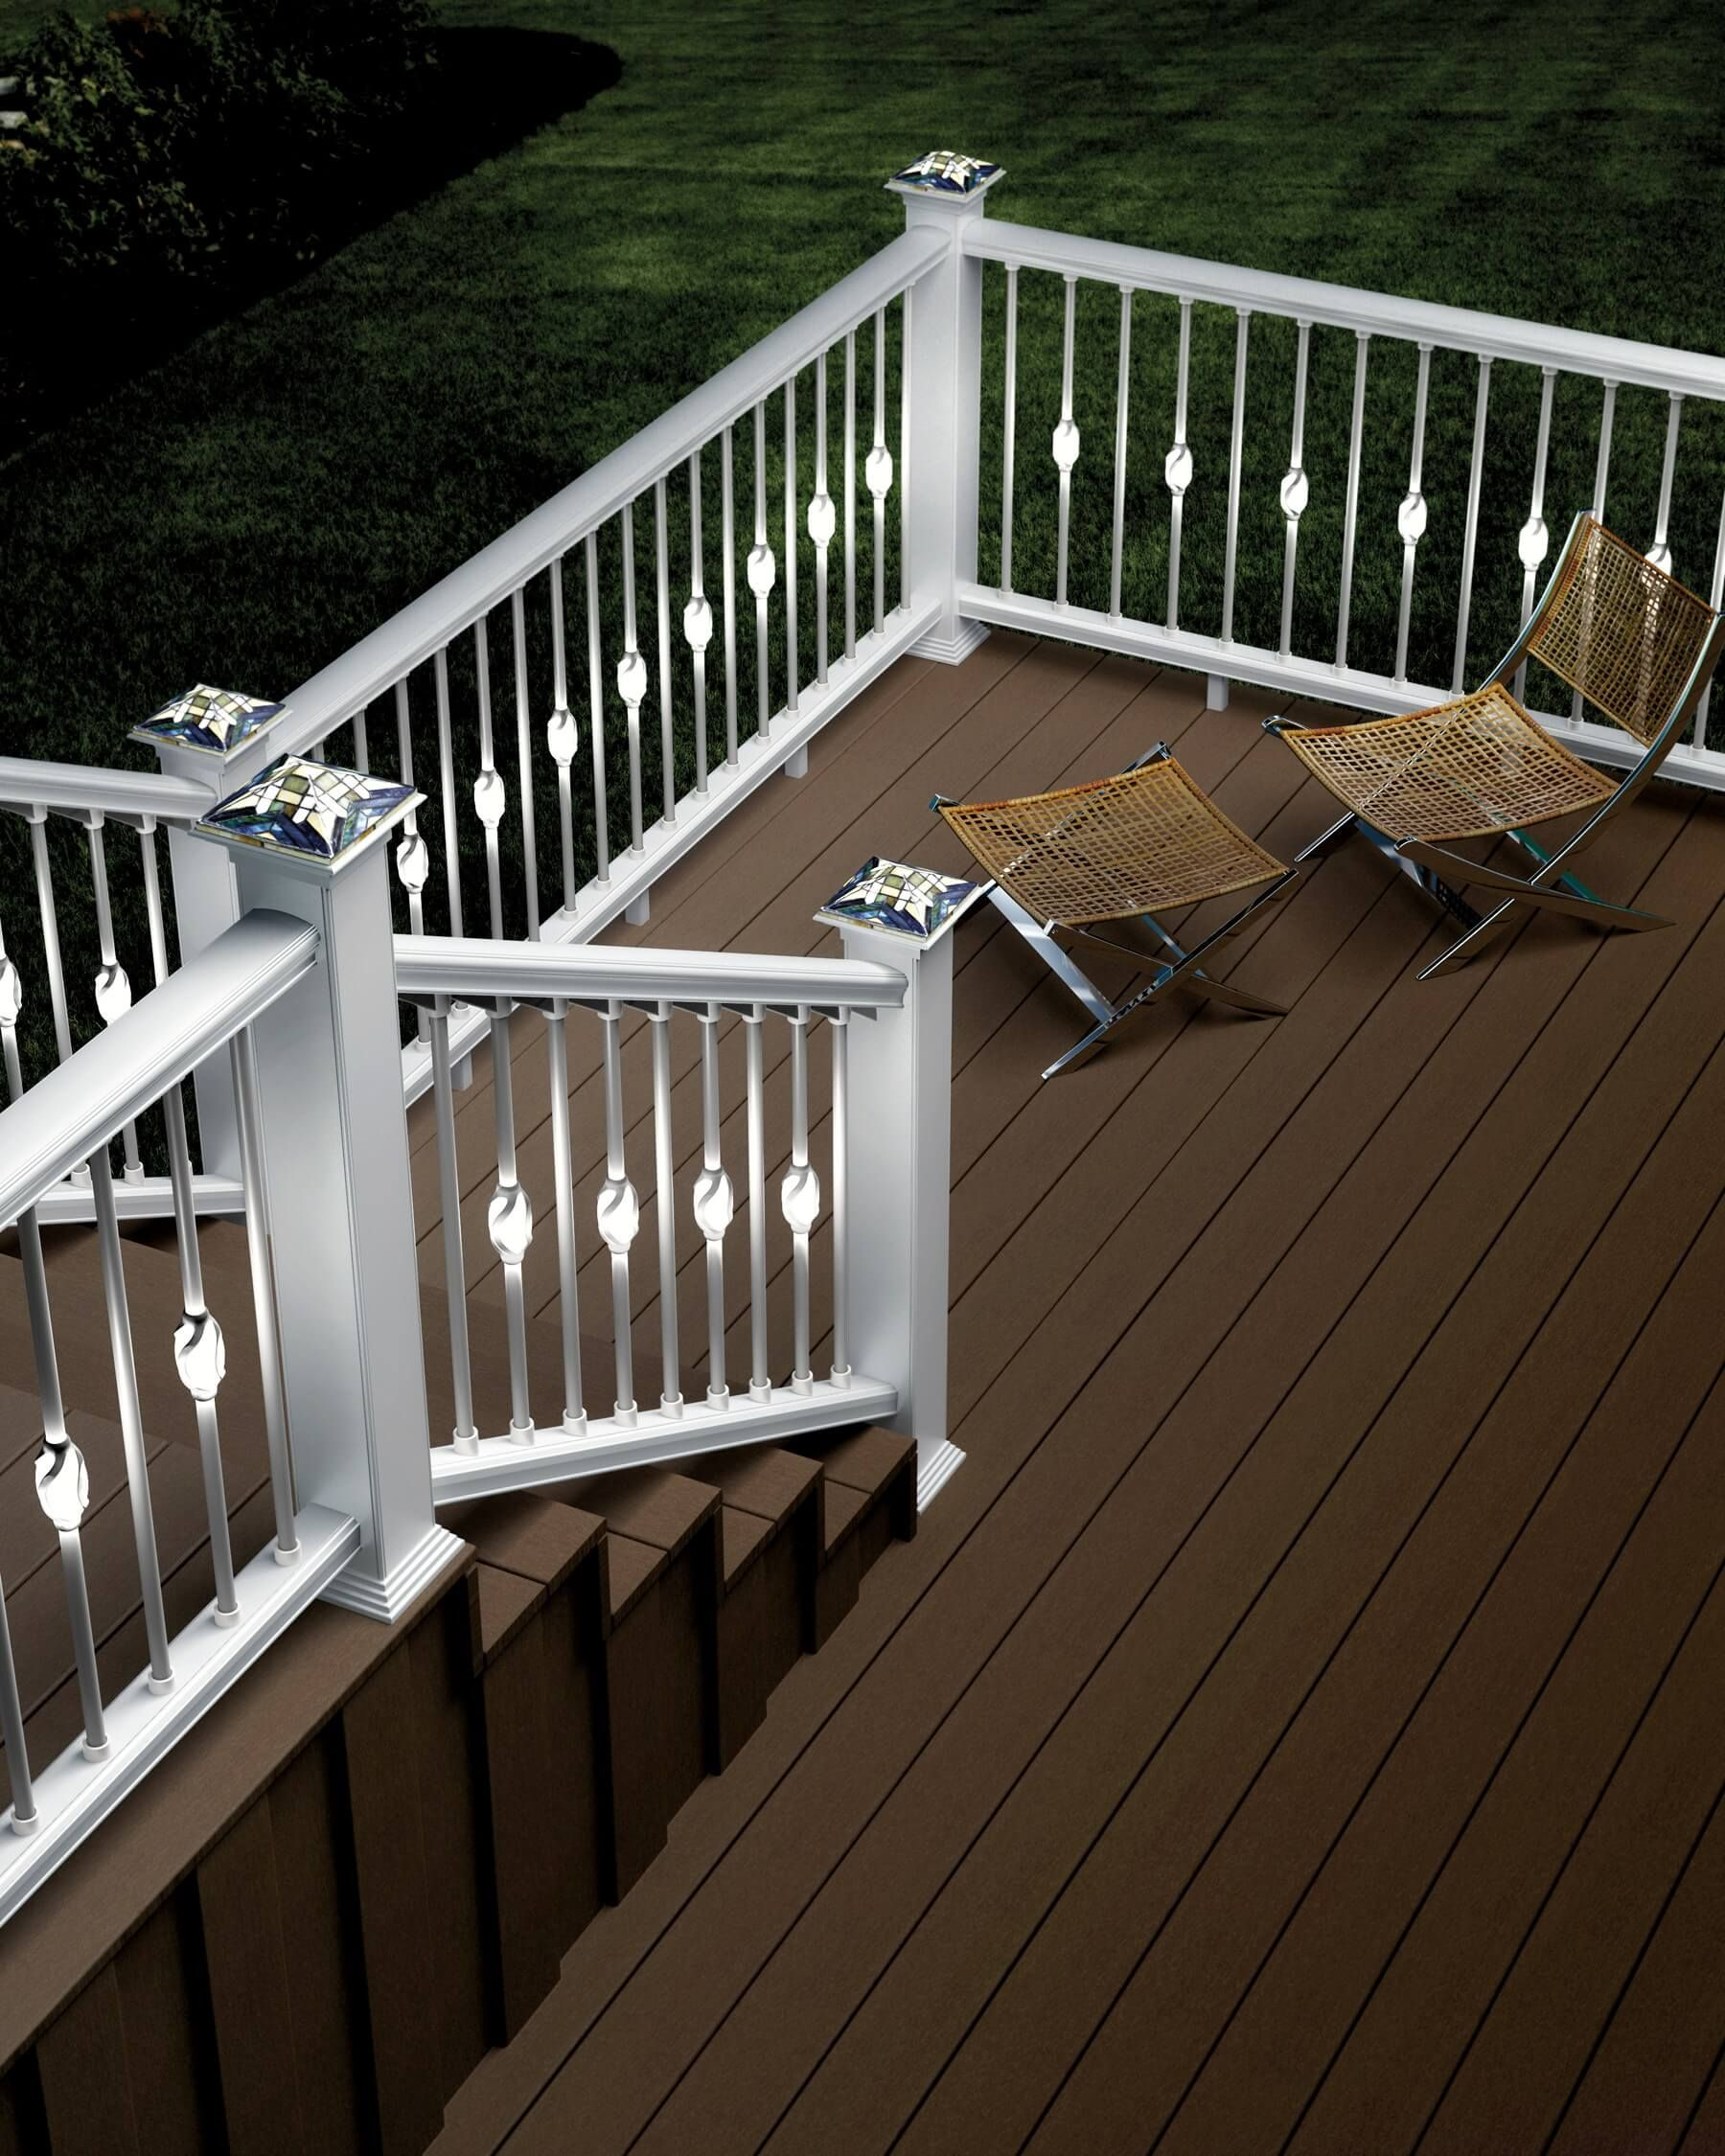 15 awesome deck lighting ideas to lighten up your deck on awesome deck patio outdoor lighting ideas that lighten up your space id=77536